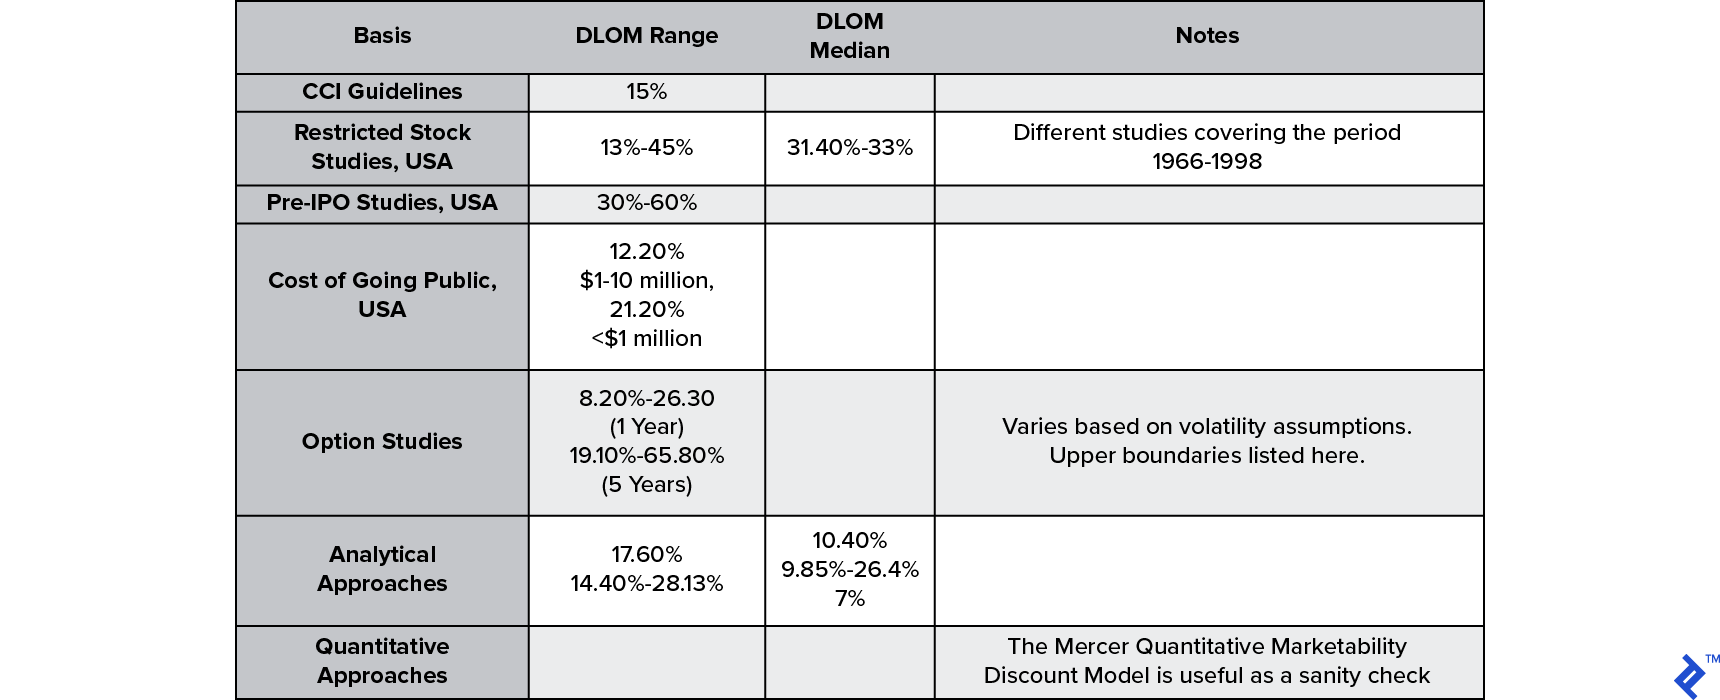 Discount for Lack of Marketability (DLOM) benchmarks and methods